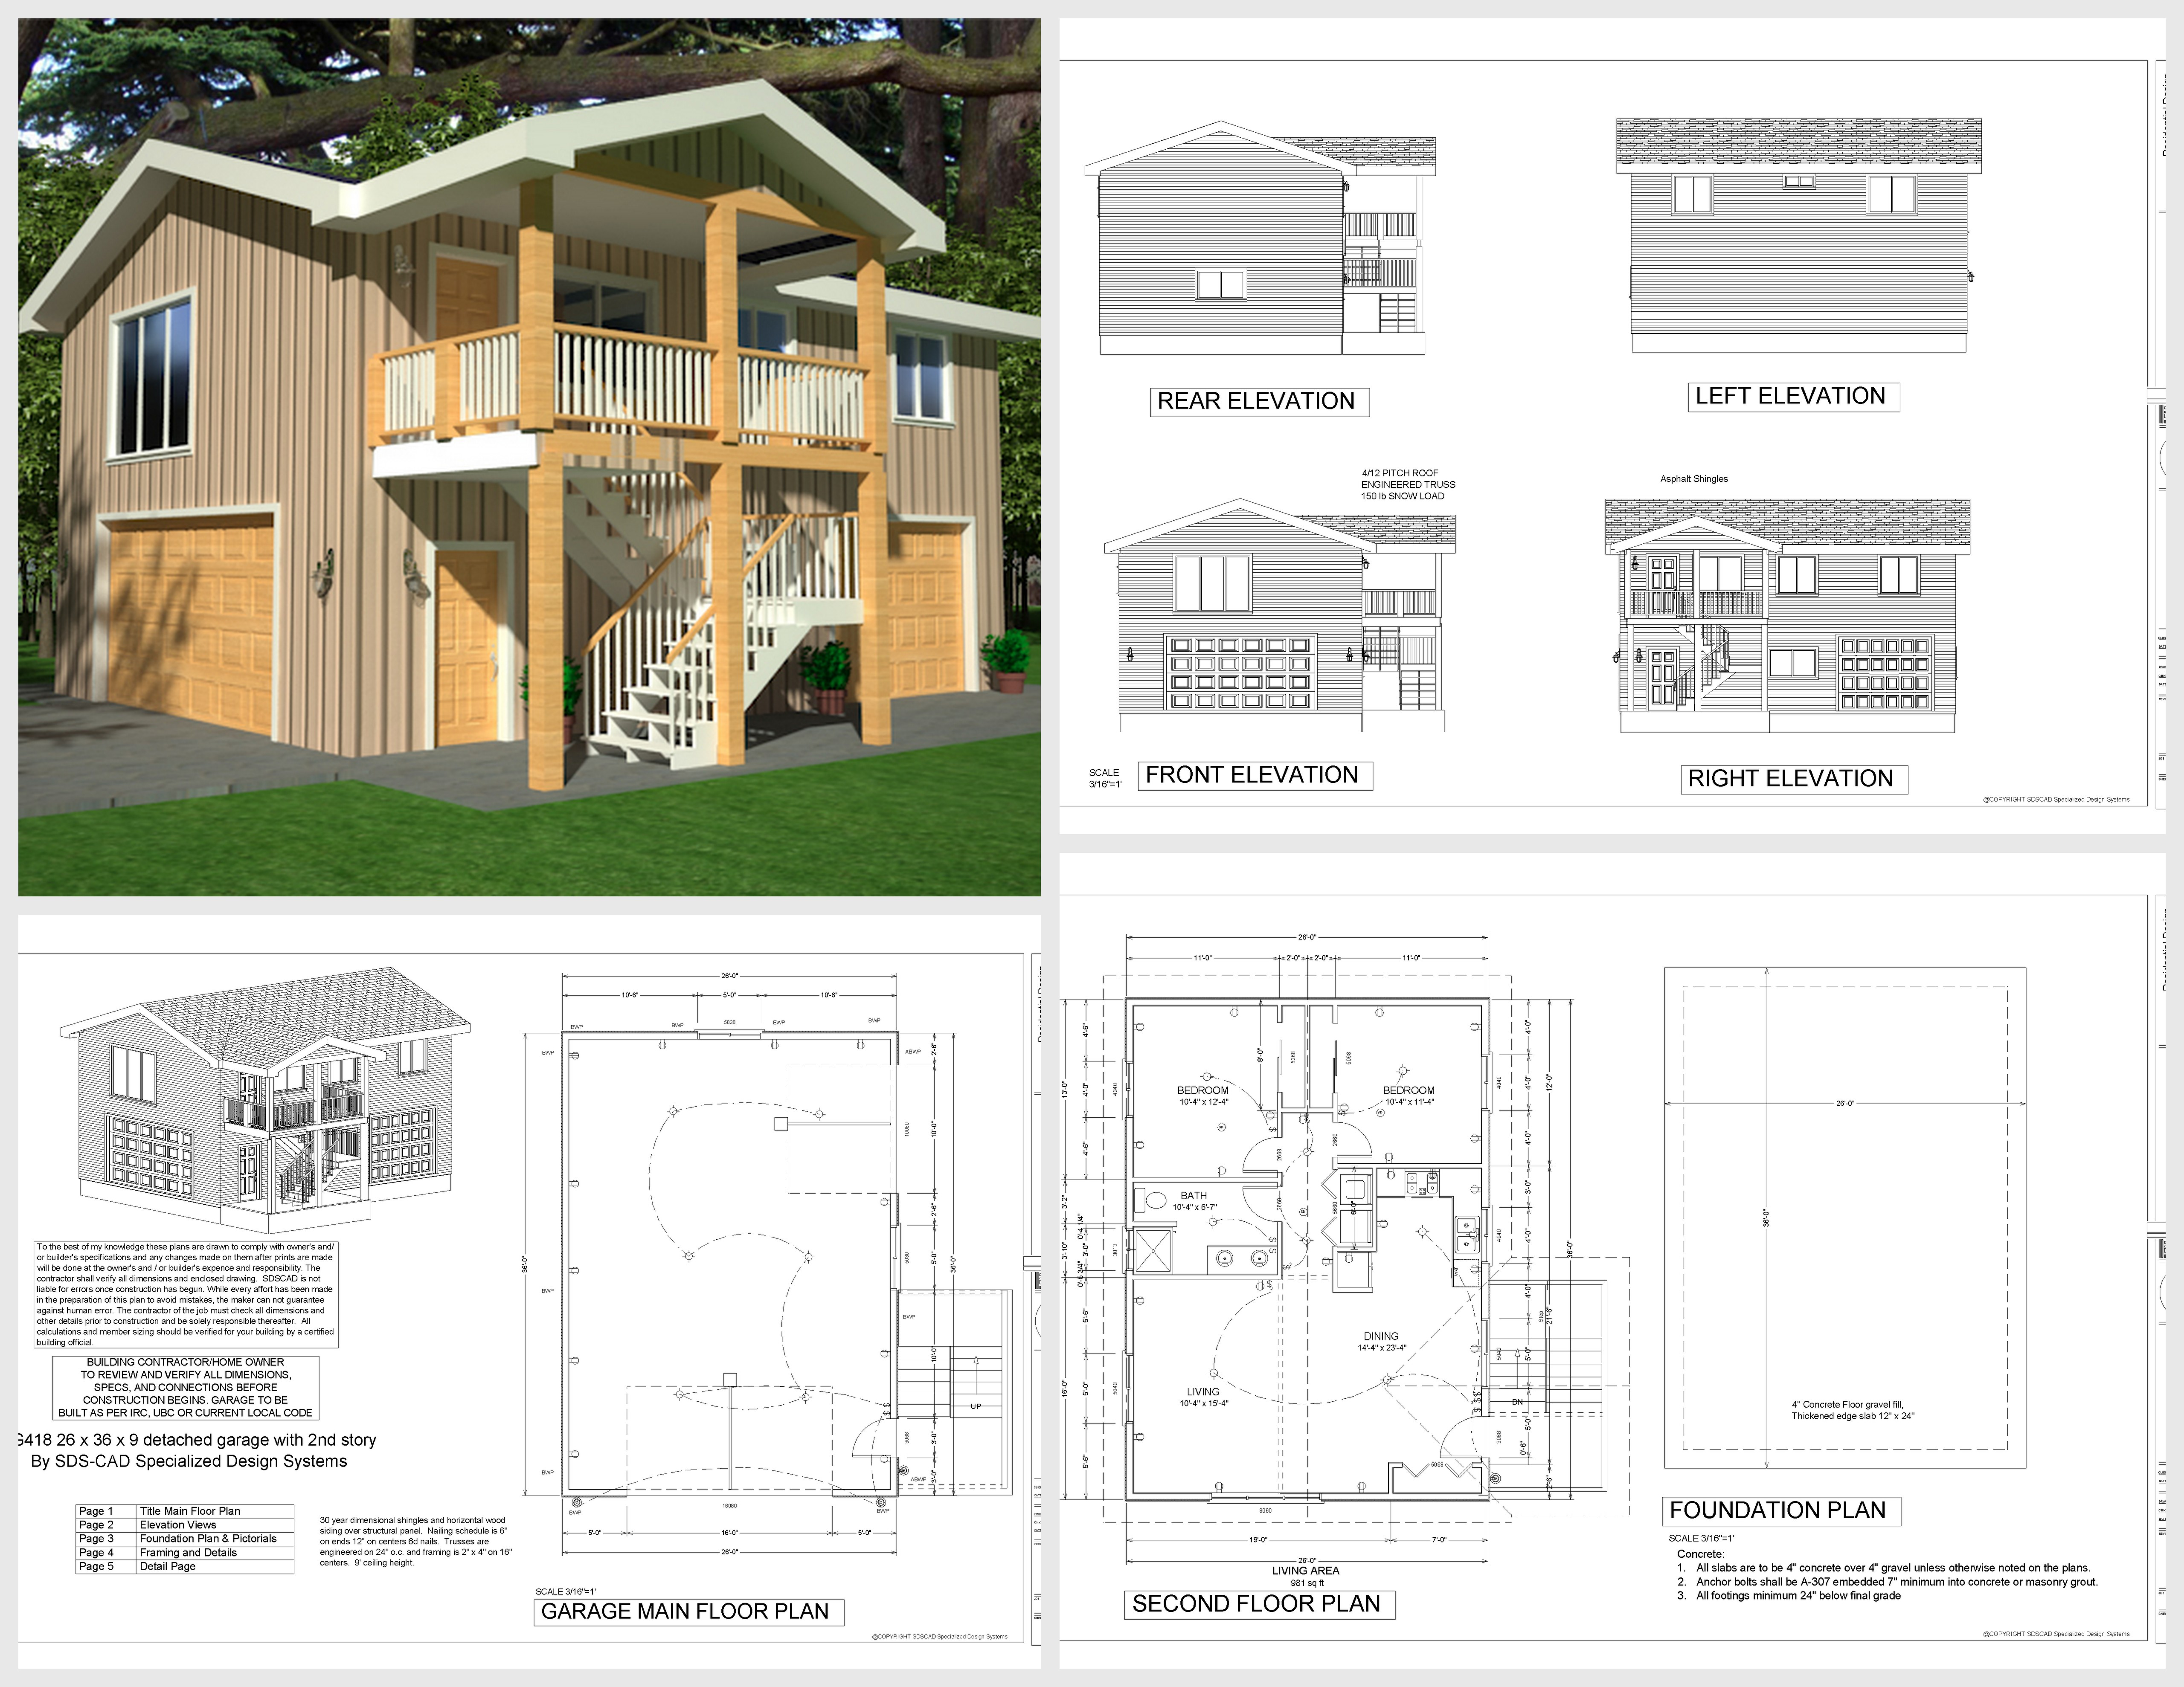 G418 apartment garage plans 26 x 36 x 9 with 2nd story for 36 x 36 garage with apartment